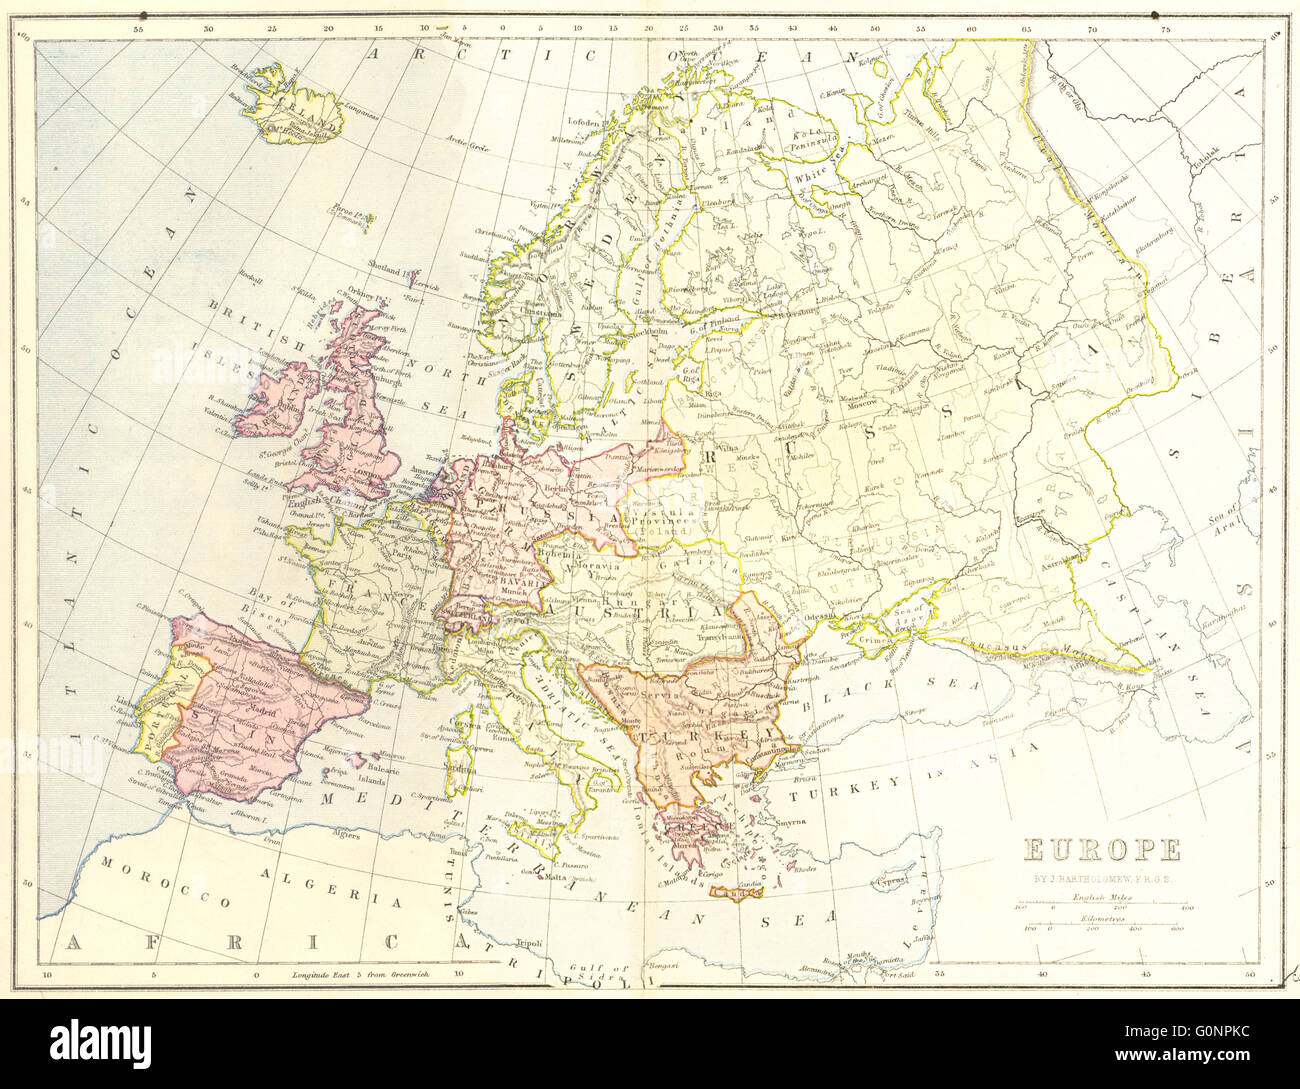 Map Of Europe 1840.Europe Europe 1870 Antique Map Stock Photo 103740992 Alamy